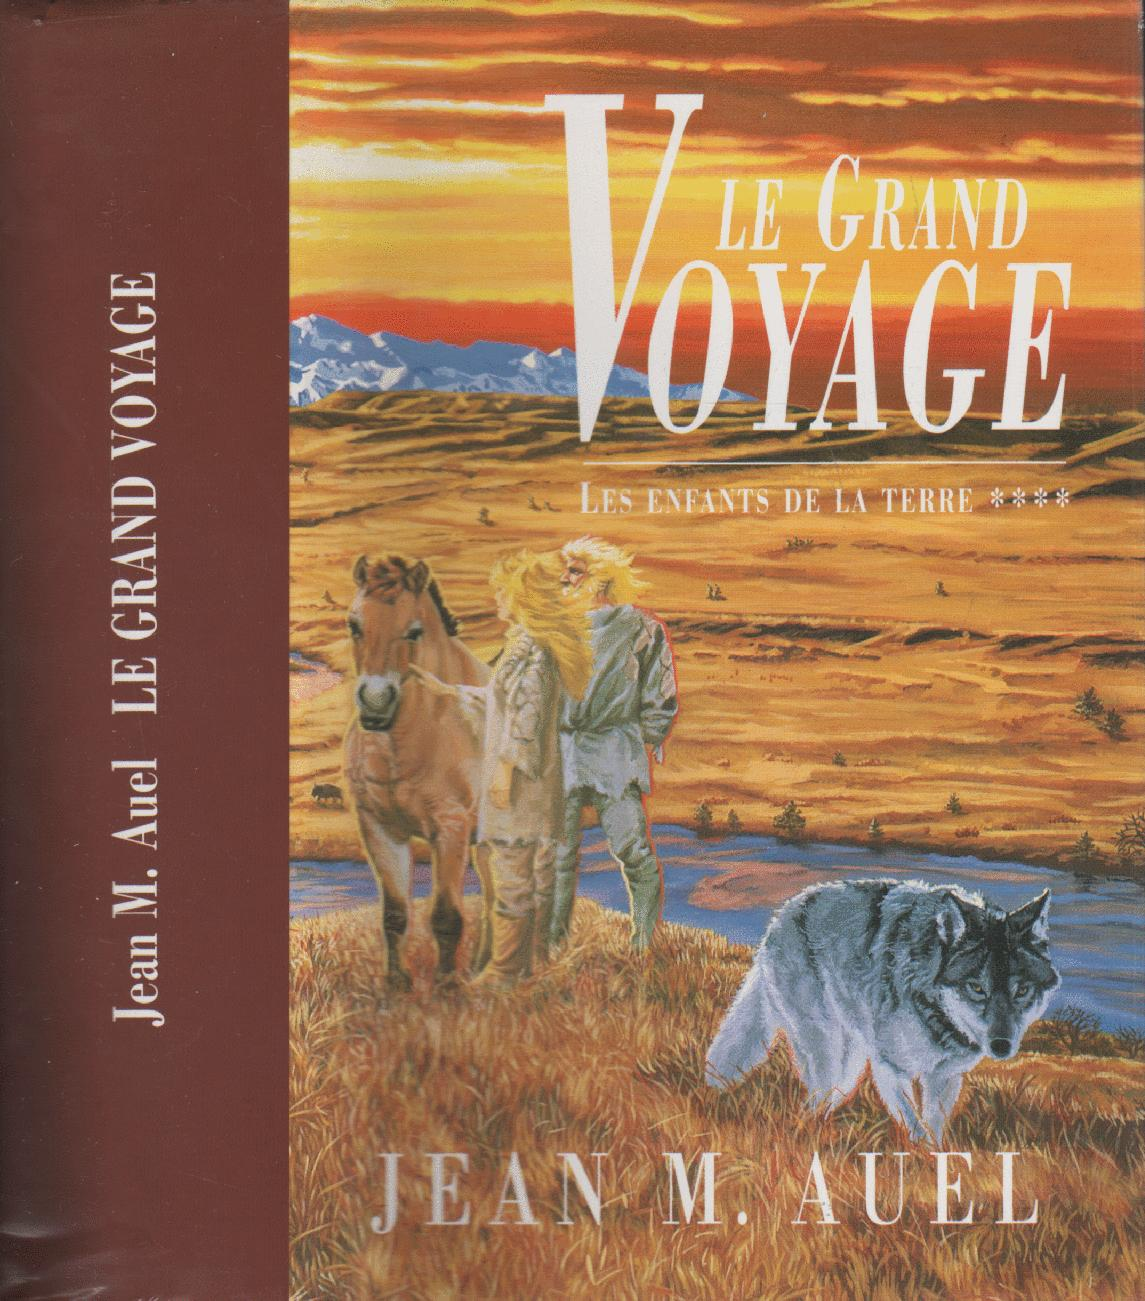 livre le grand voyage jean m auel acheter occasion 1992. Black Bedroom Furniture Sets. Home Design Ideas